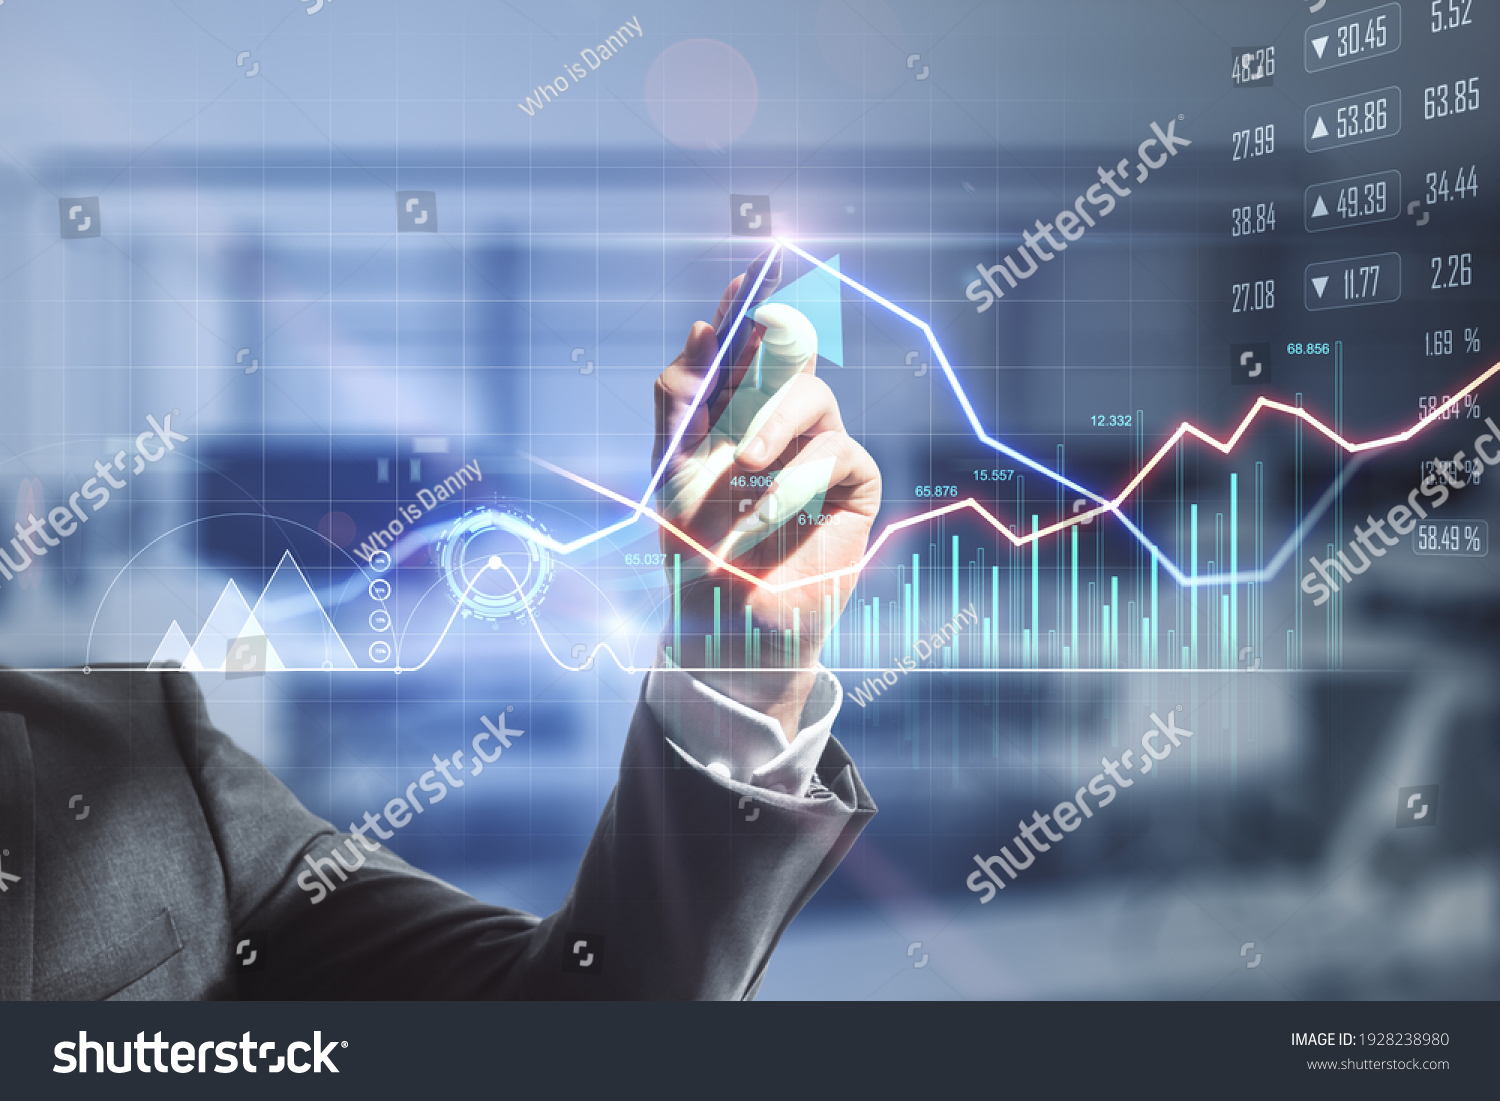 Businessman hand writing on digital screen with financial trade market graphs, diagram and forex chart. Double exposure #1928238980